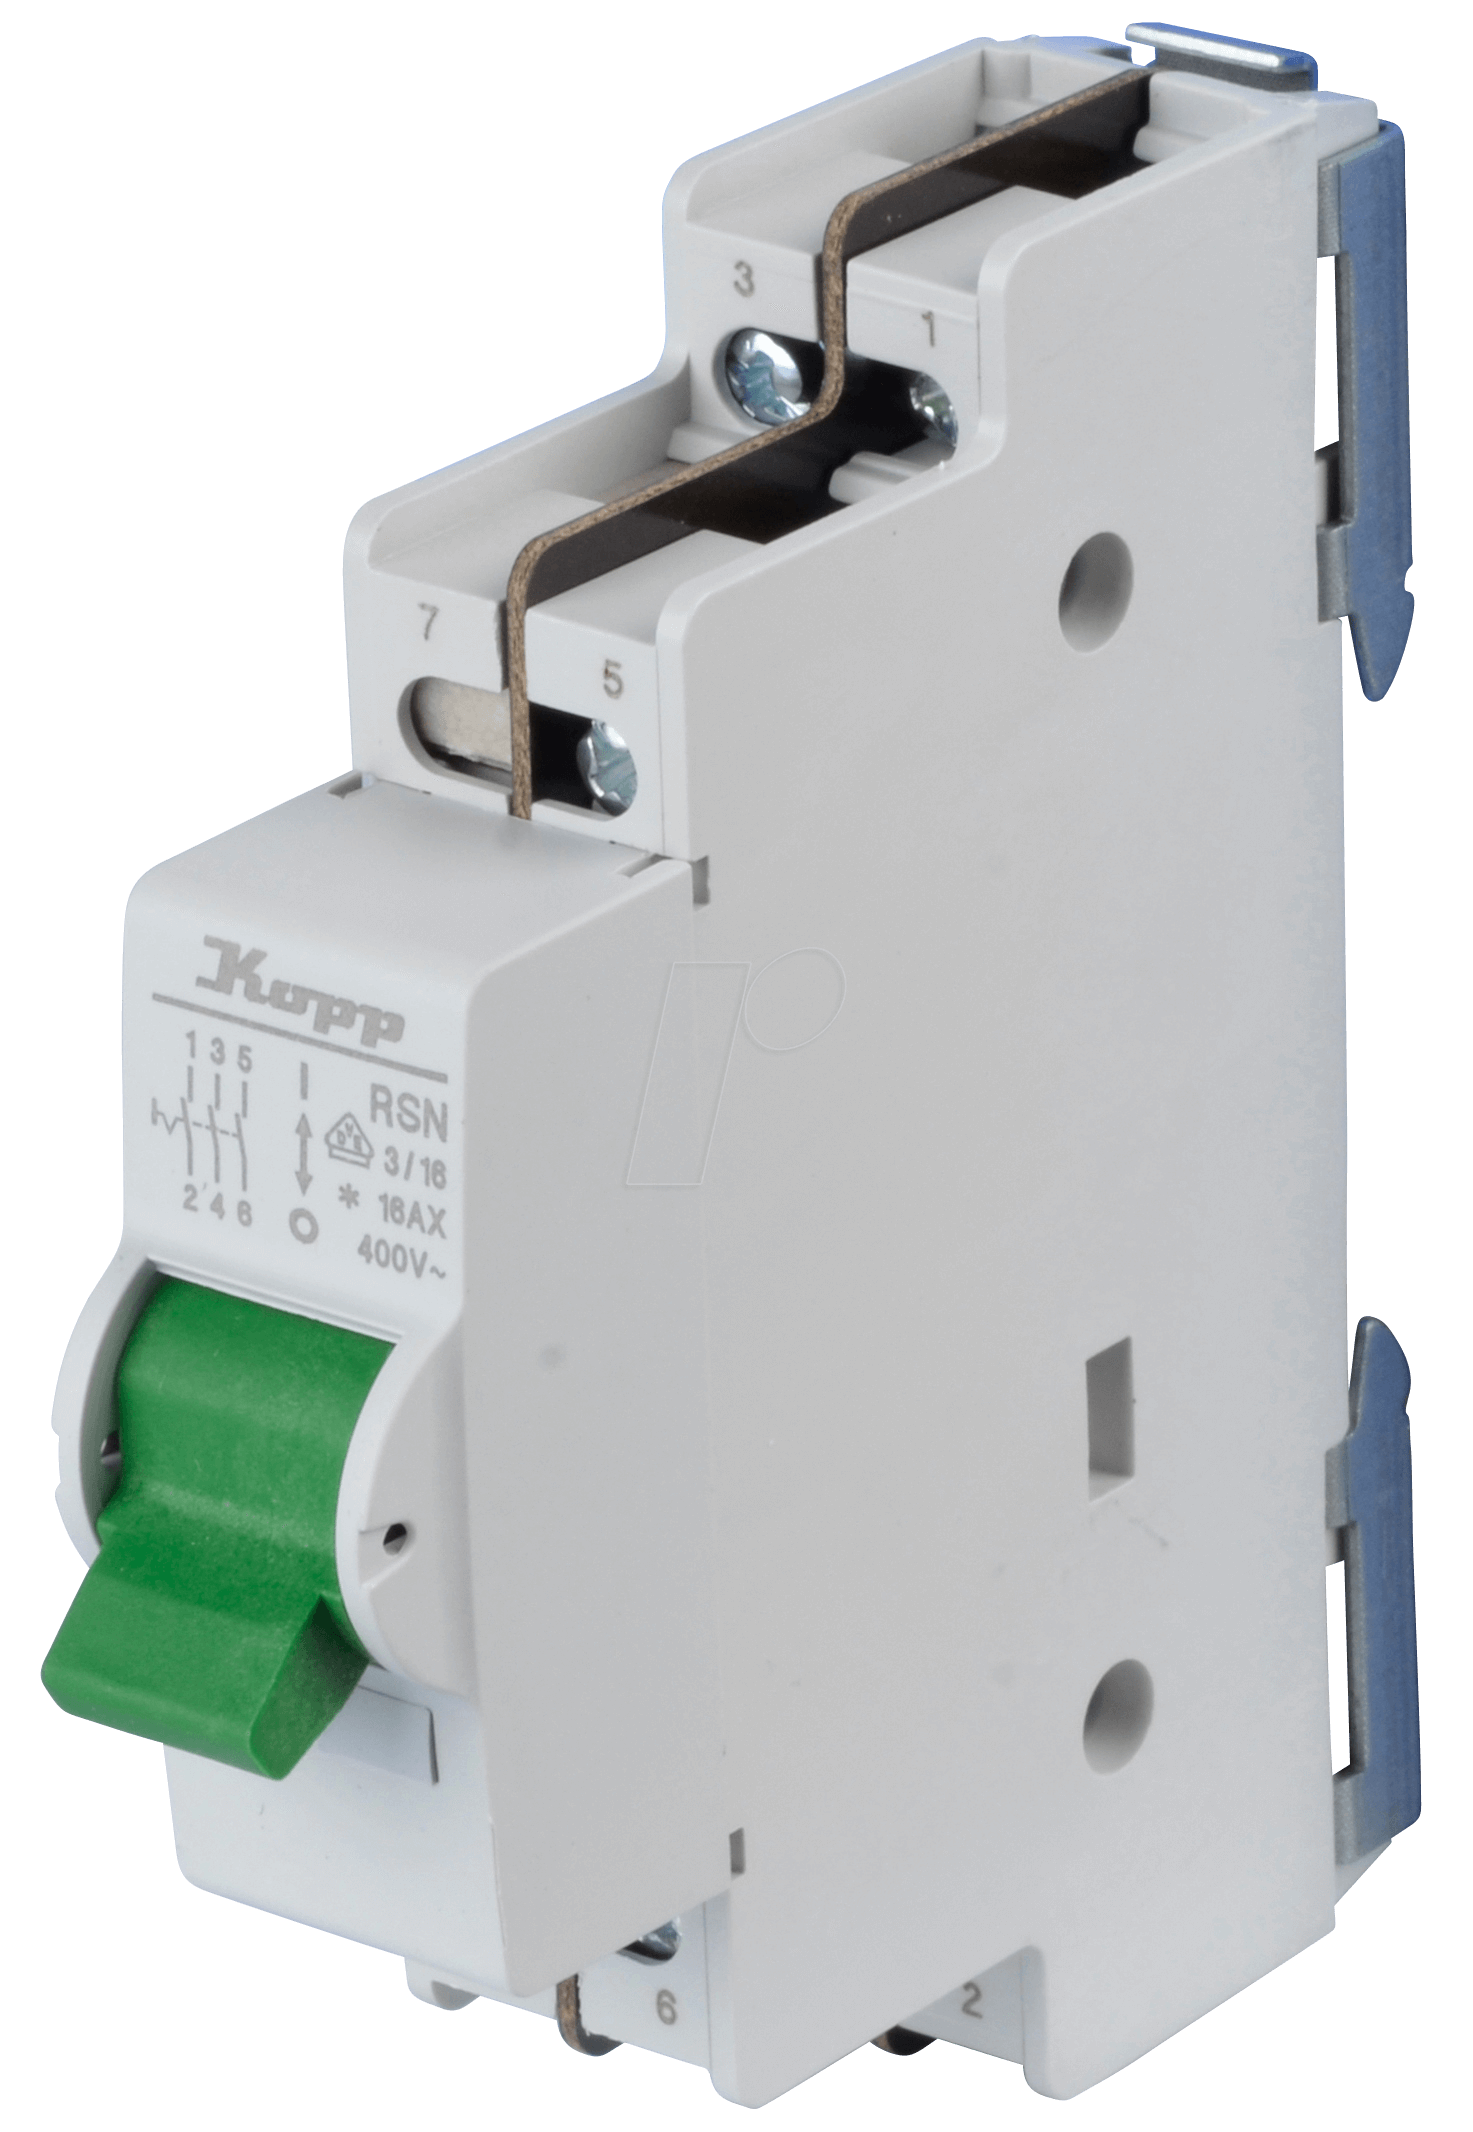 Wall Mount Circuit Breaker : Rsn wall mounted circuit breaker a pole at